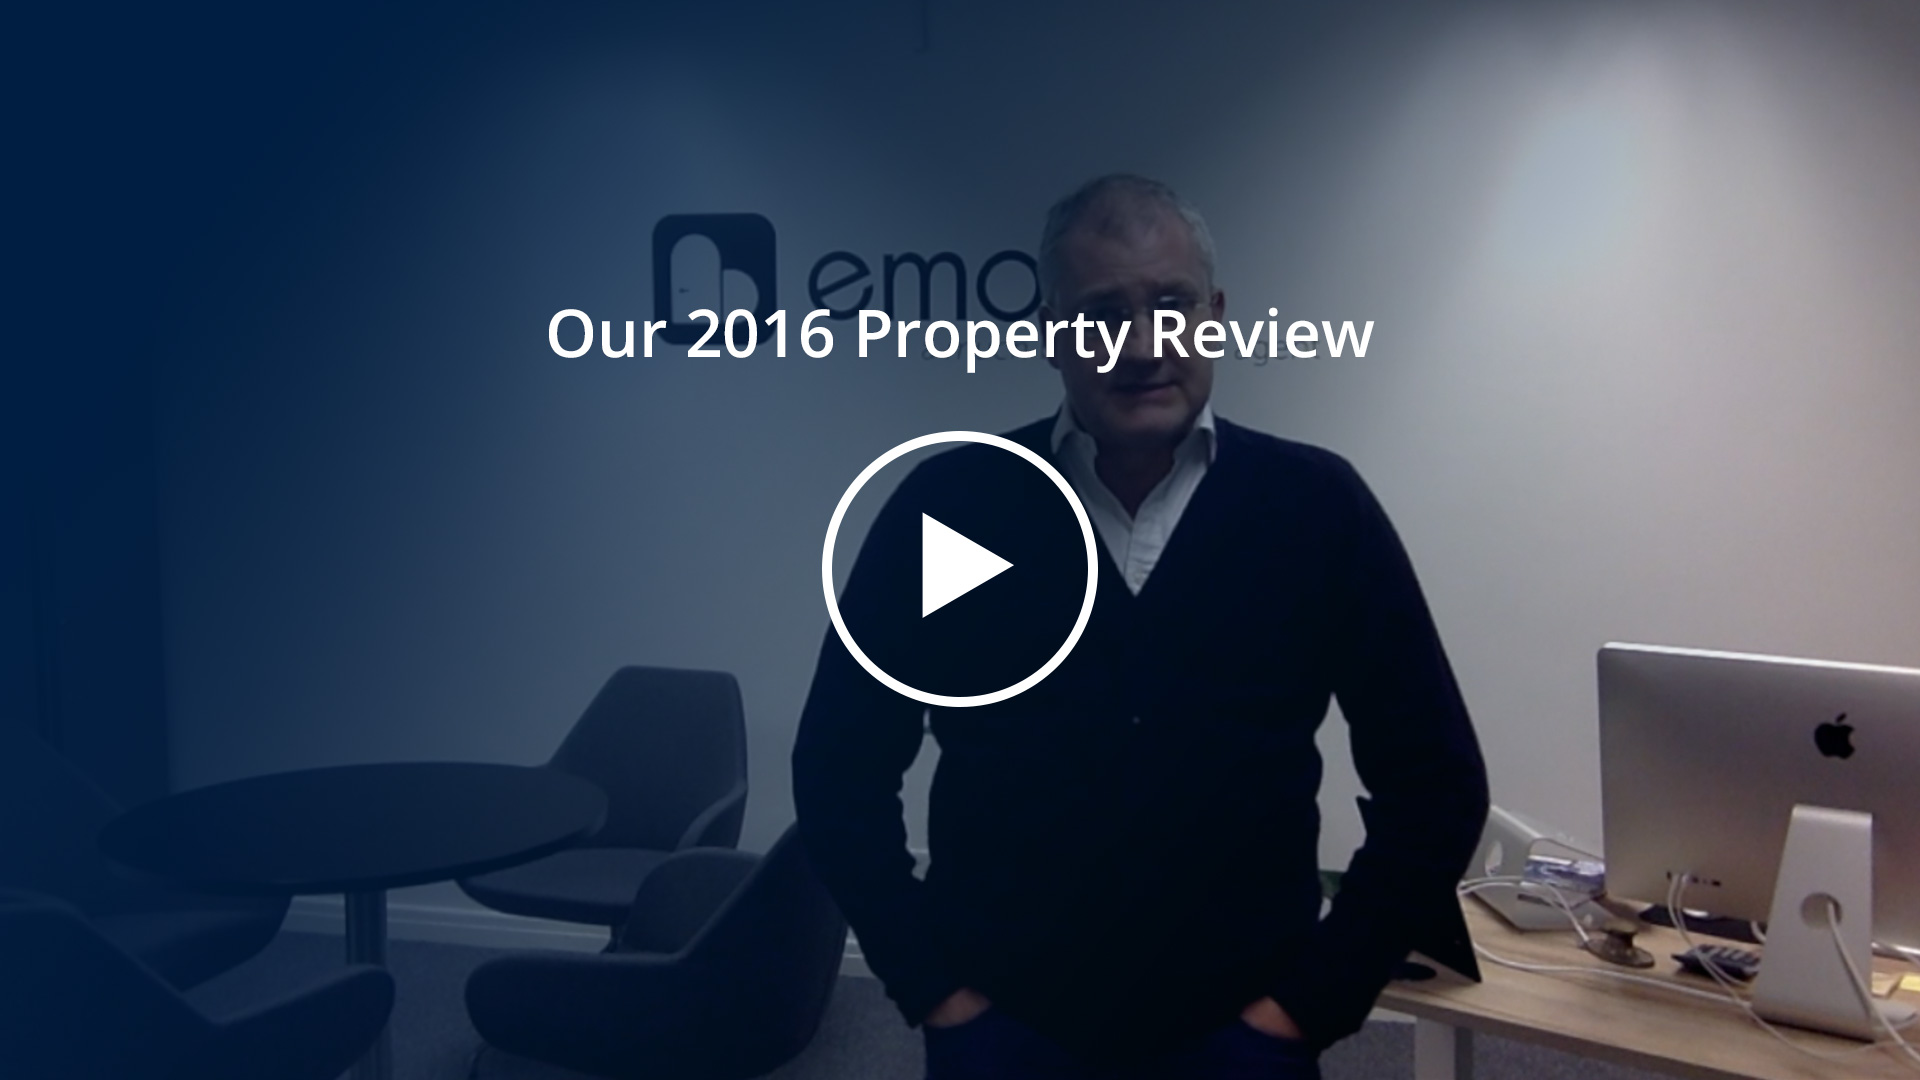 Our 2016 Property Review